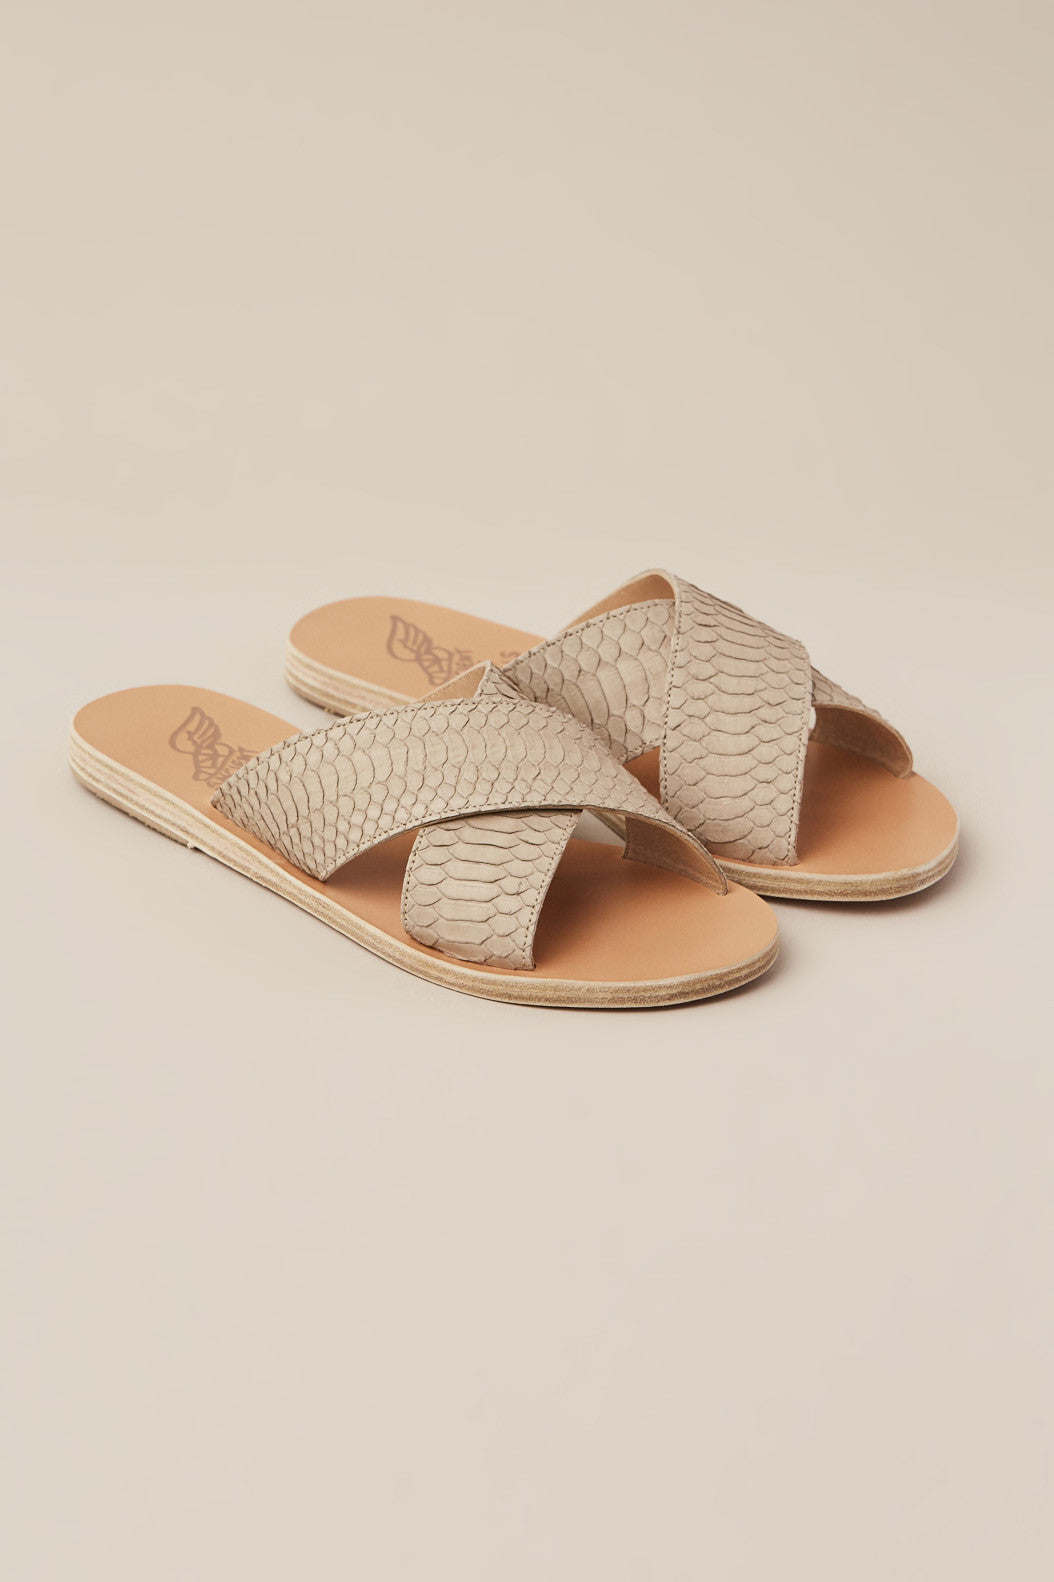 Thais Sandal, Snake Taupe by Ancient Greek Sandals